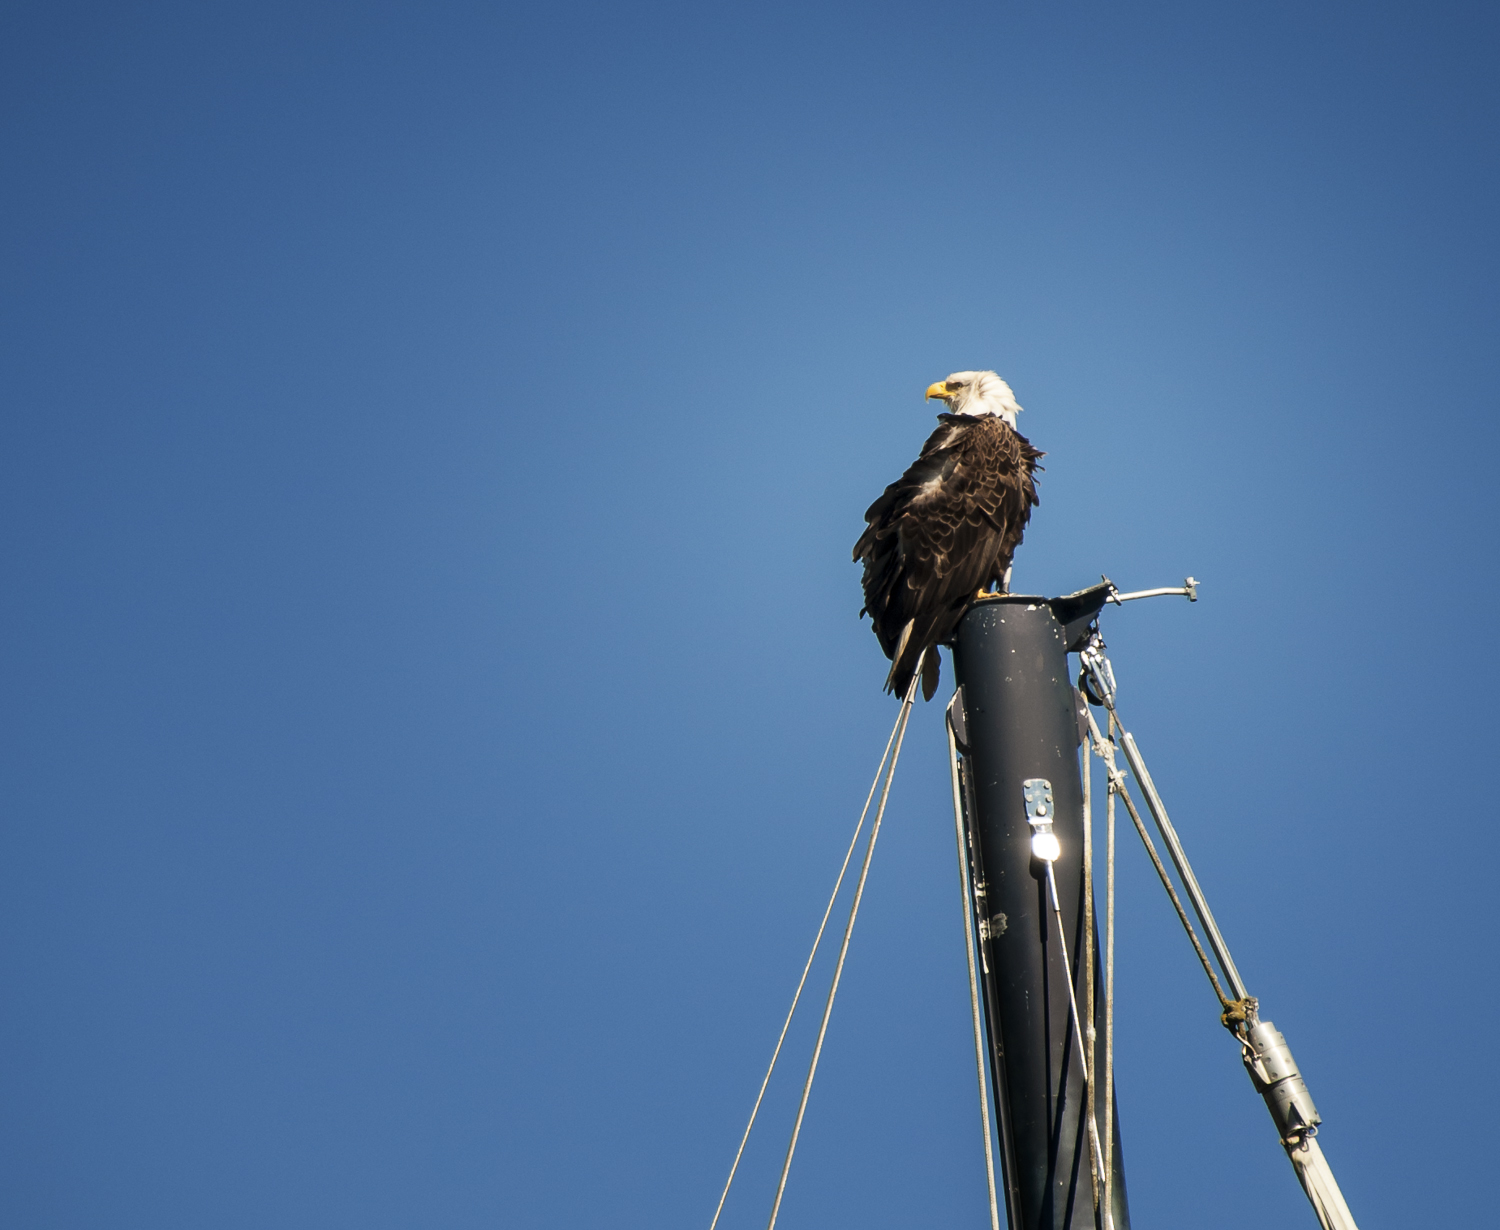 Shabby looking eagle on a shabby looking boat